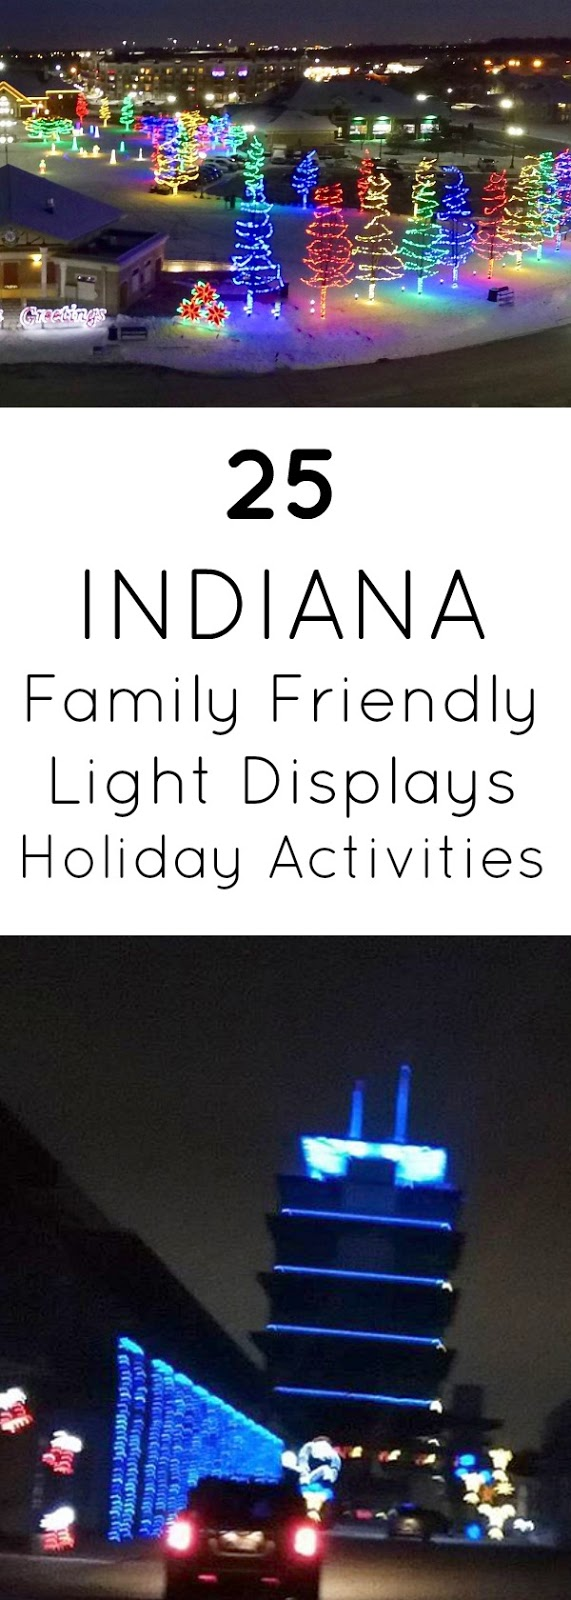 25 Best Holiday Light Displays and Christmas Activities Indiana: Speedway and Beyond